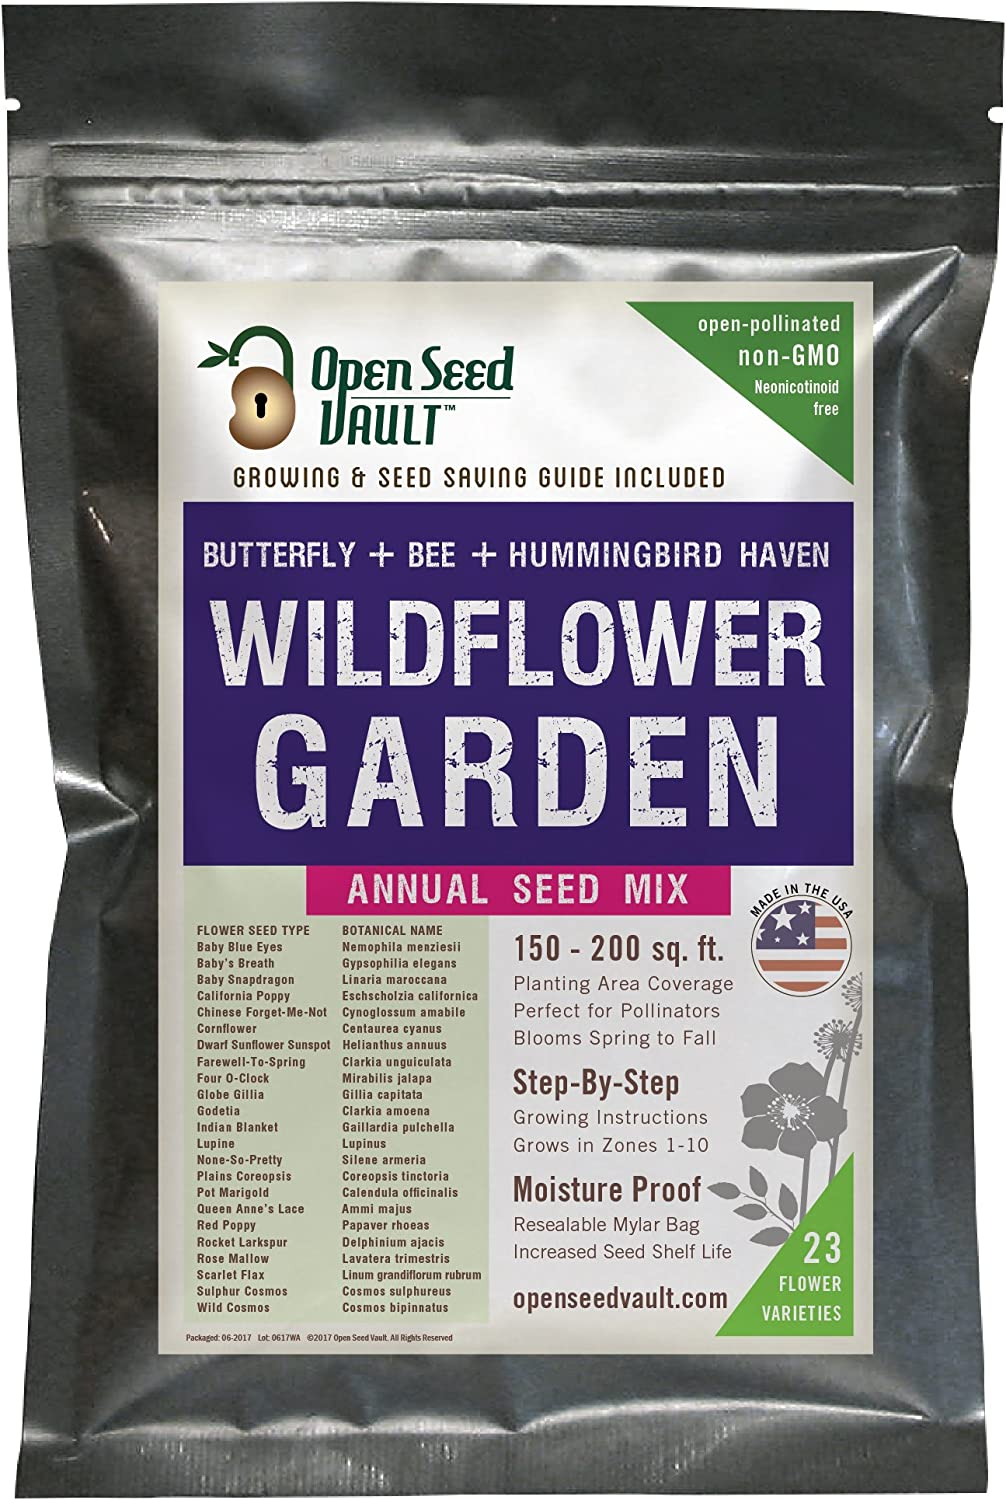 Wildflower-Seeds-Bulk-Annual-Seed-Mix-Plus-Full-Growing-Guide-by-Open-Seed-Vault